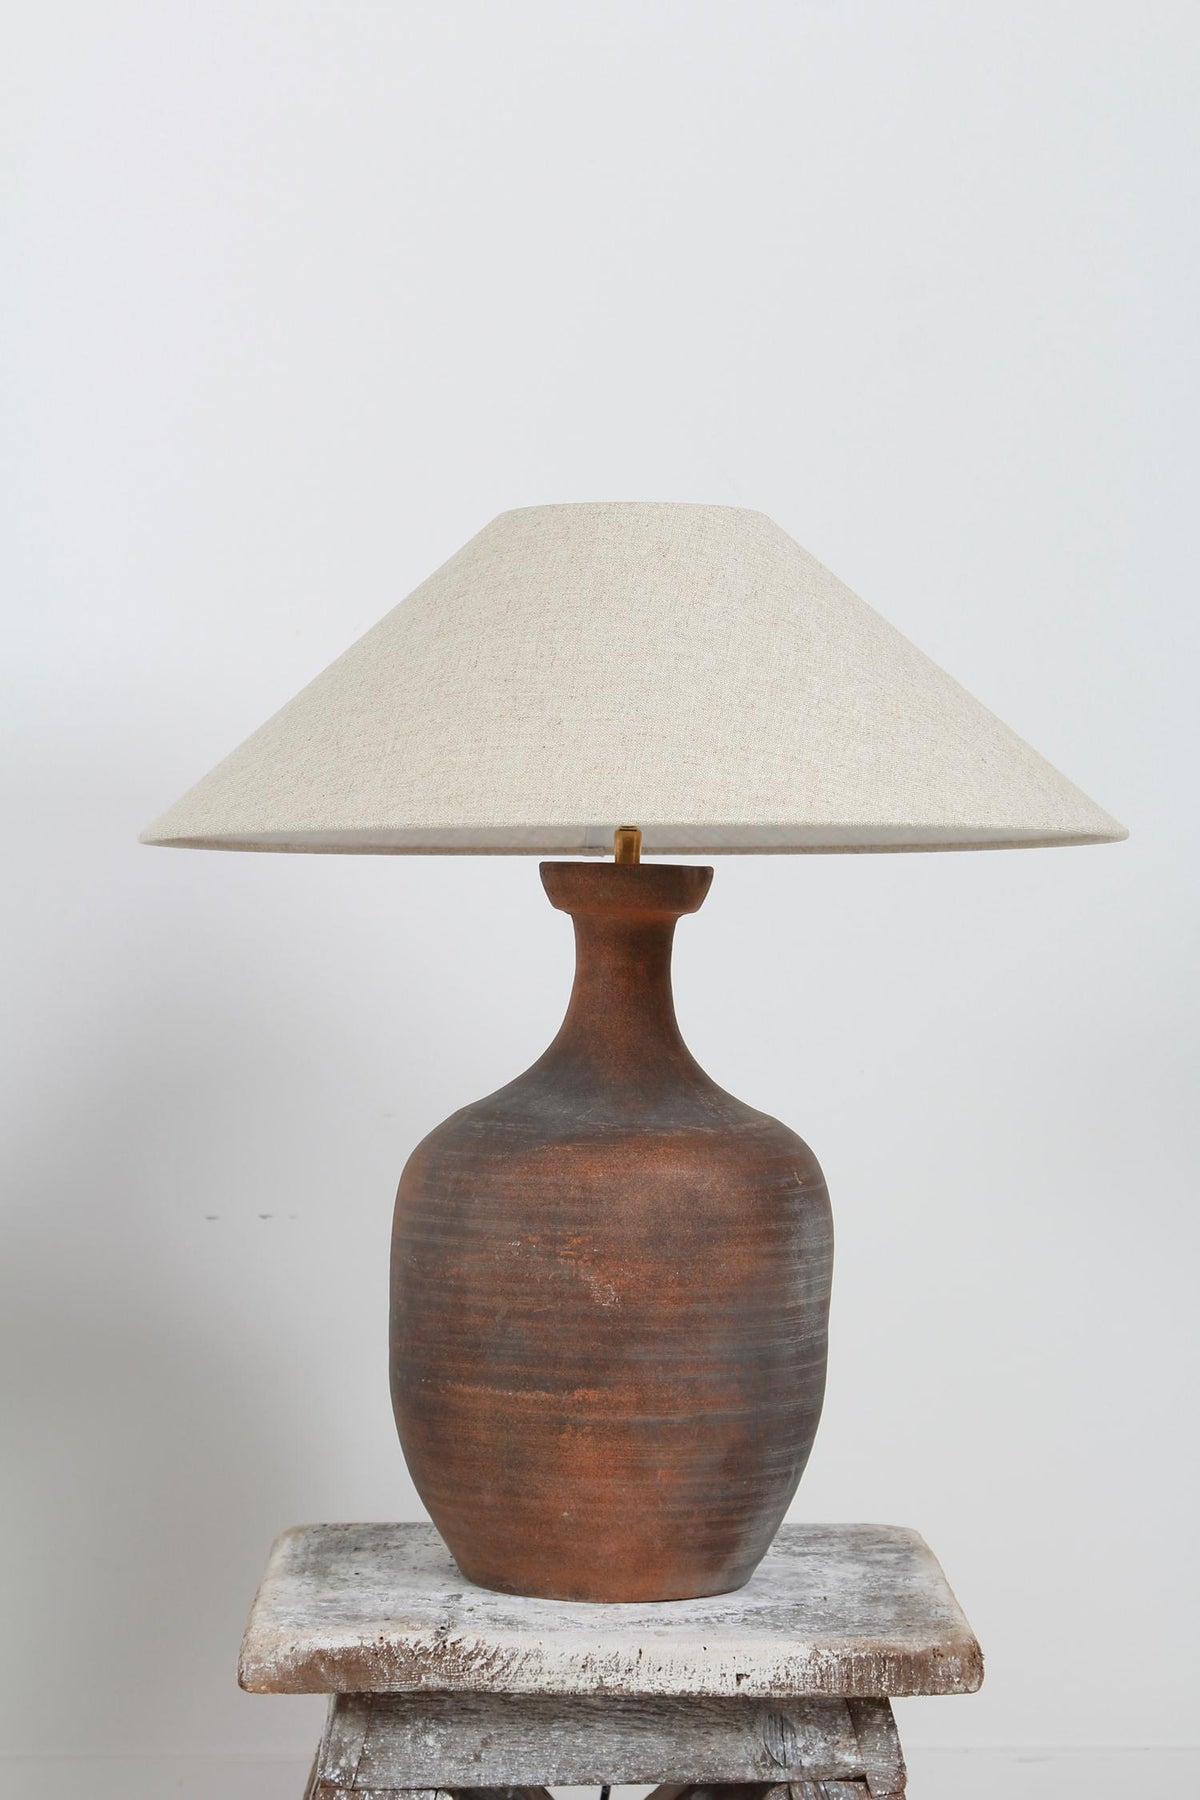 AUTHENTIC UNGLAZED TERRACOTTA JAR VASE LAMP WITH LINEN SHADE